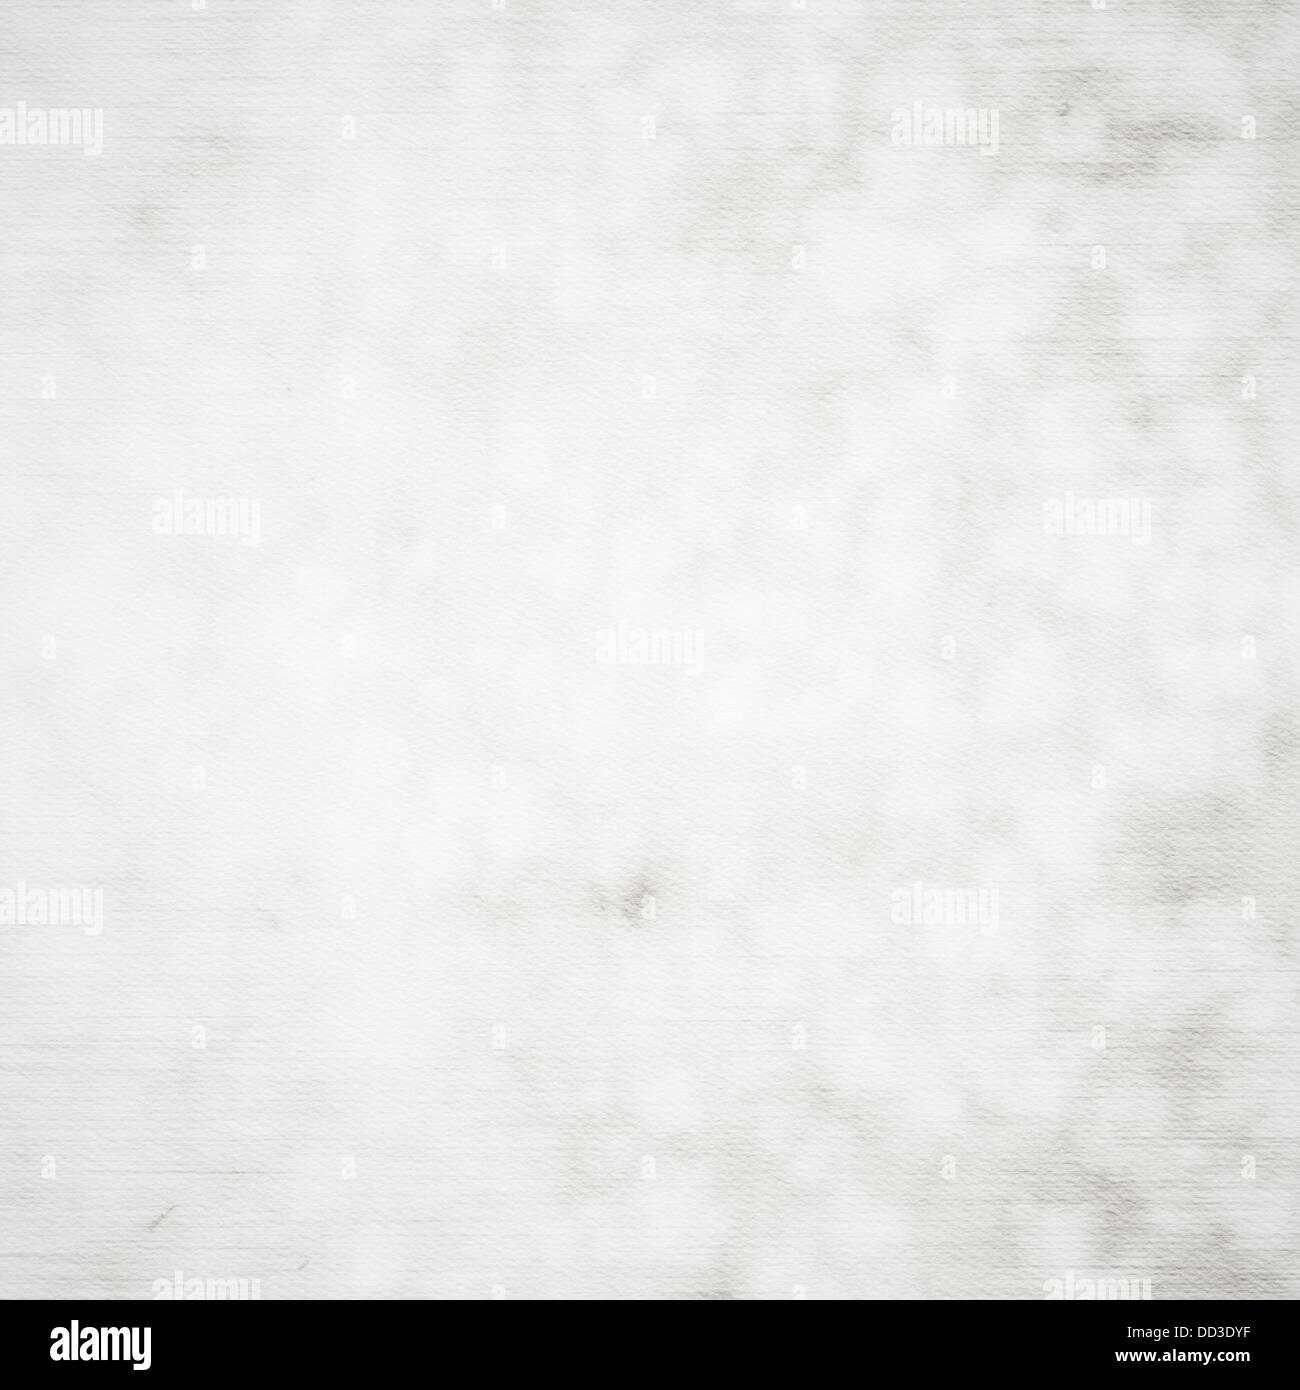 white old paper template background or texture stock photo, Powerpoint templates